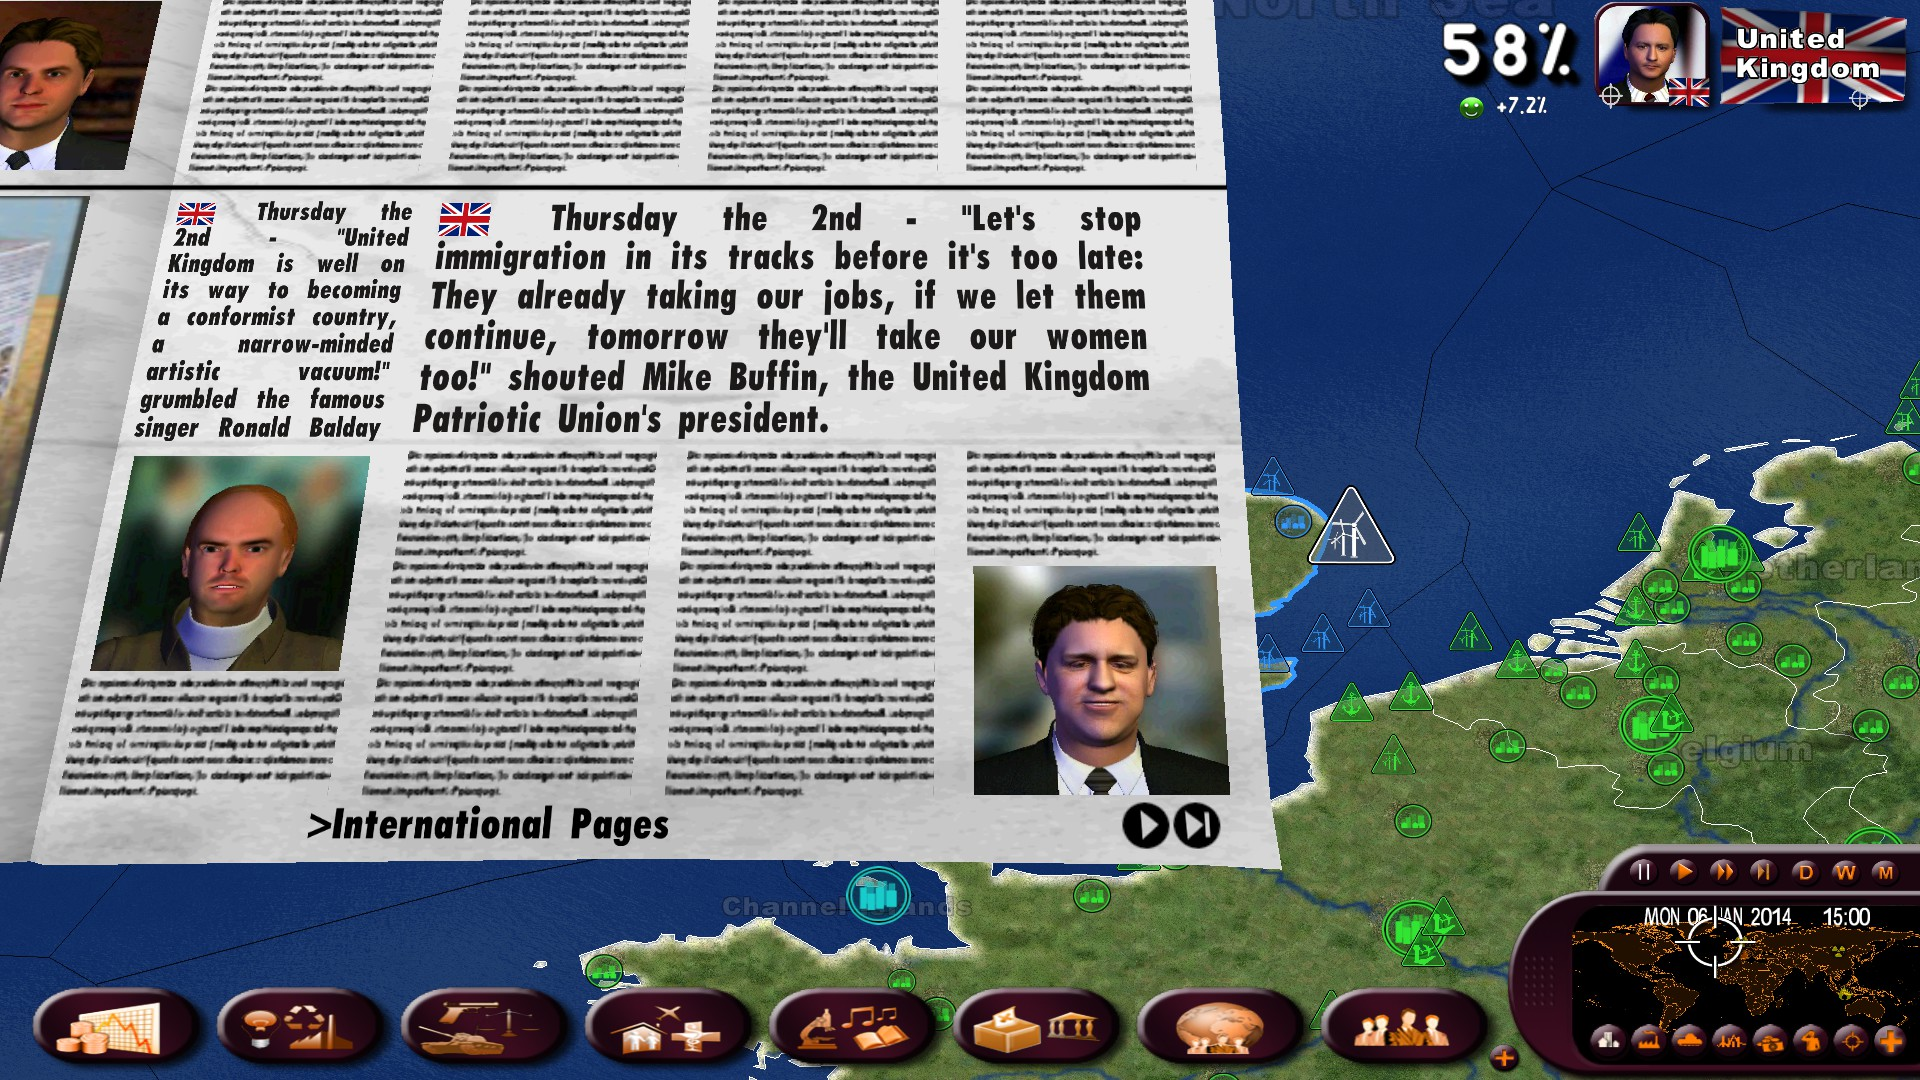 news masters world geopolitical simulator play expansive